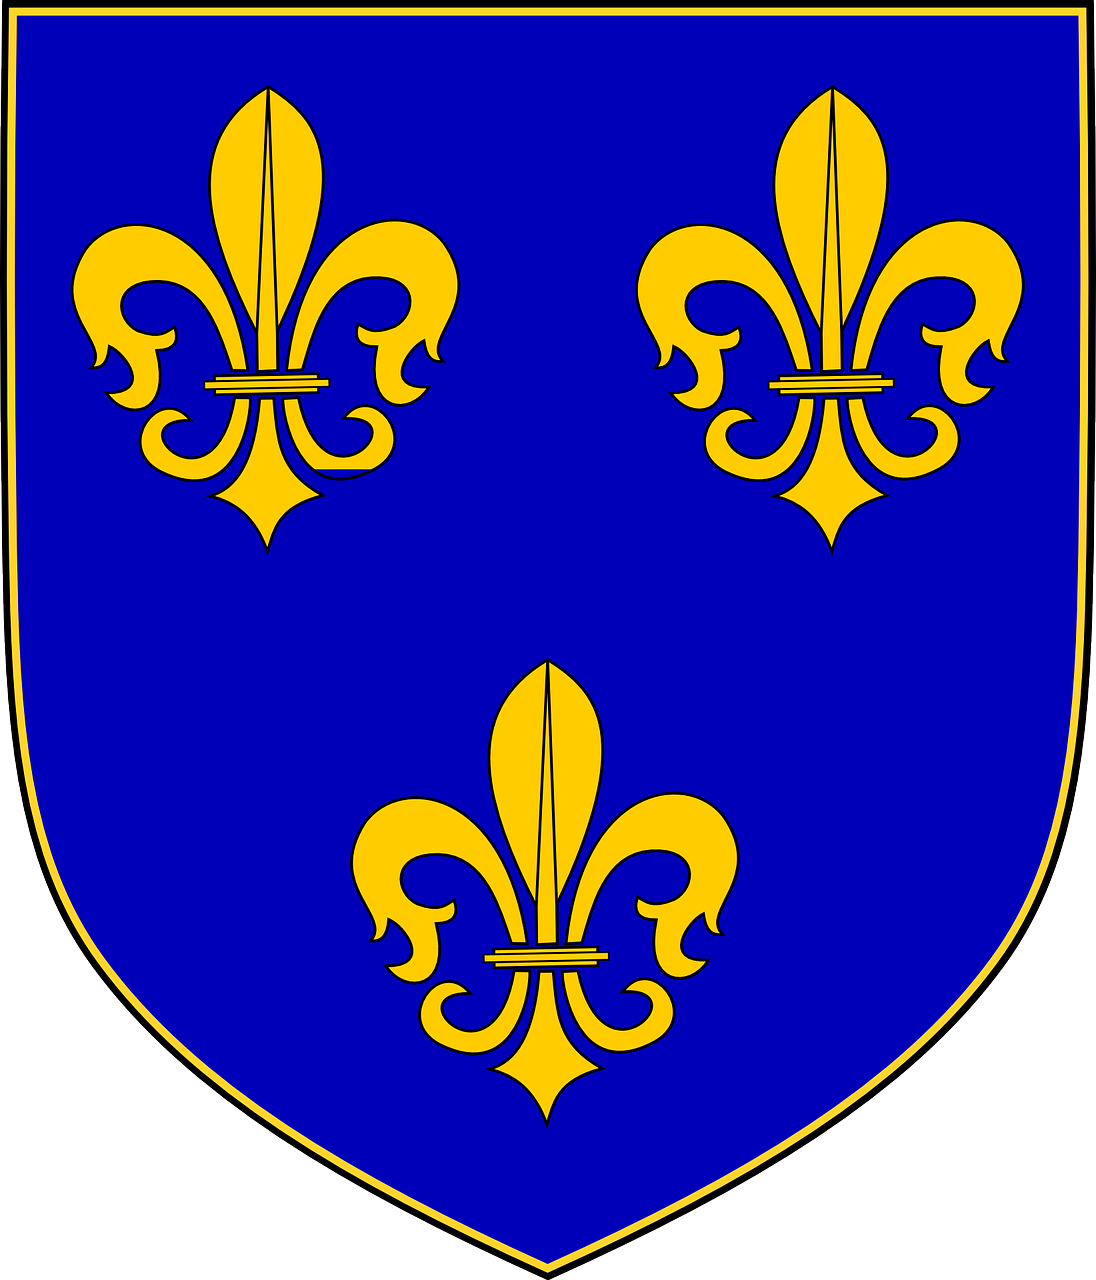 montgomery fluer de lis coat of arms free photo